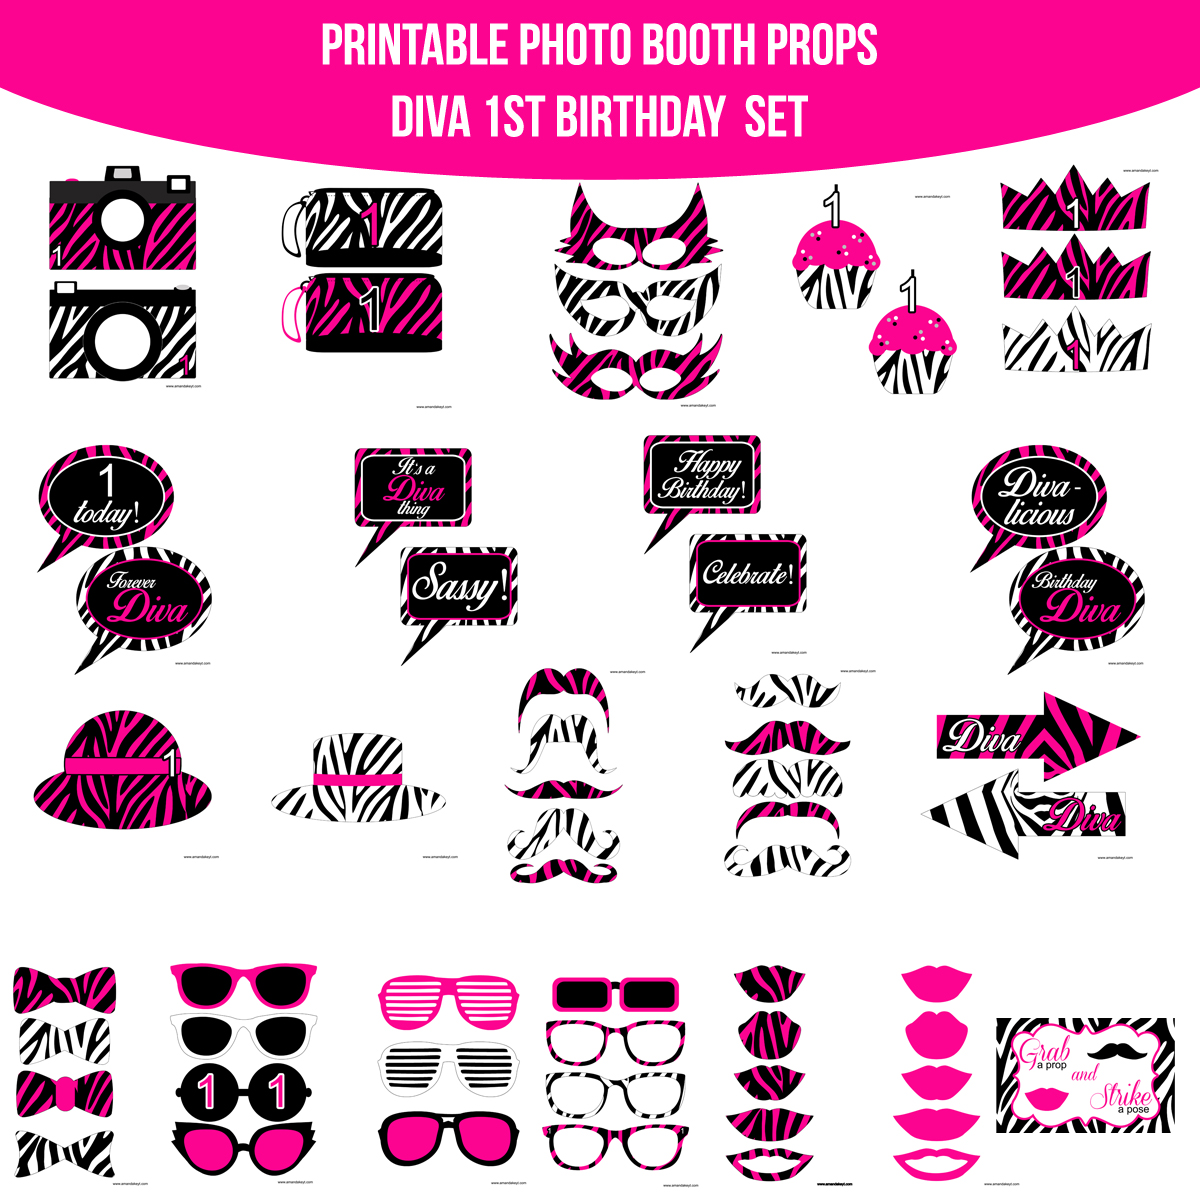 photograph about Free Printable Photo Booth Props Birthday referred to as Fast Obtain Diva To start with 1st Birthday Printable Picture Booth Prop Preset  Amanda Keyt Printable Types